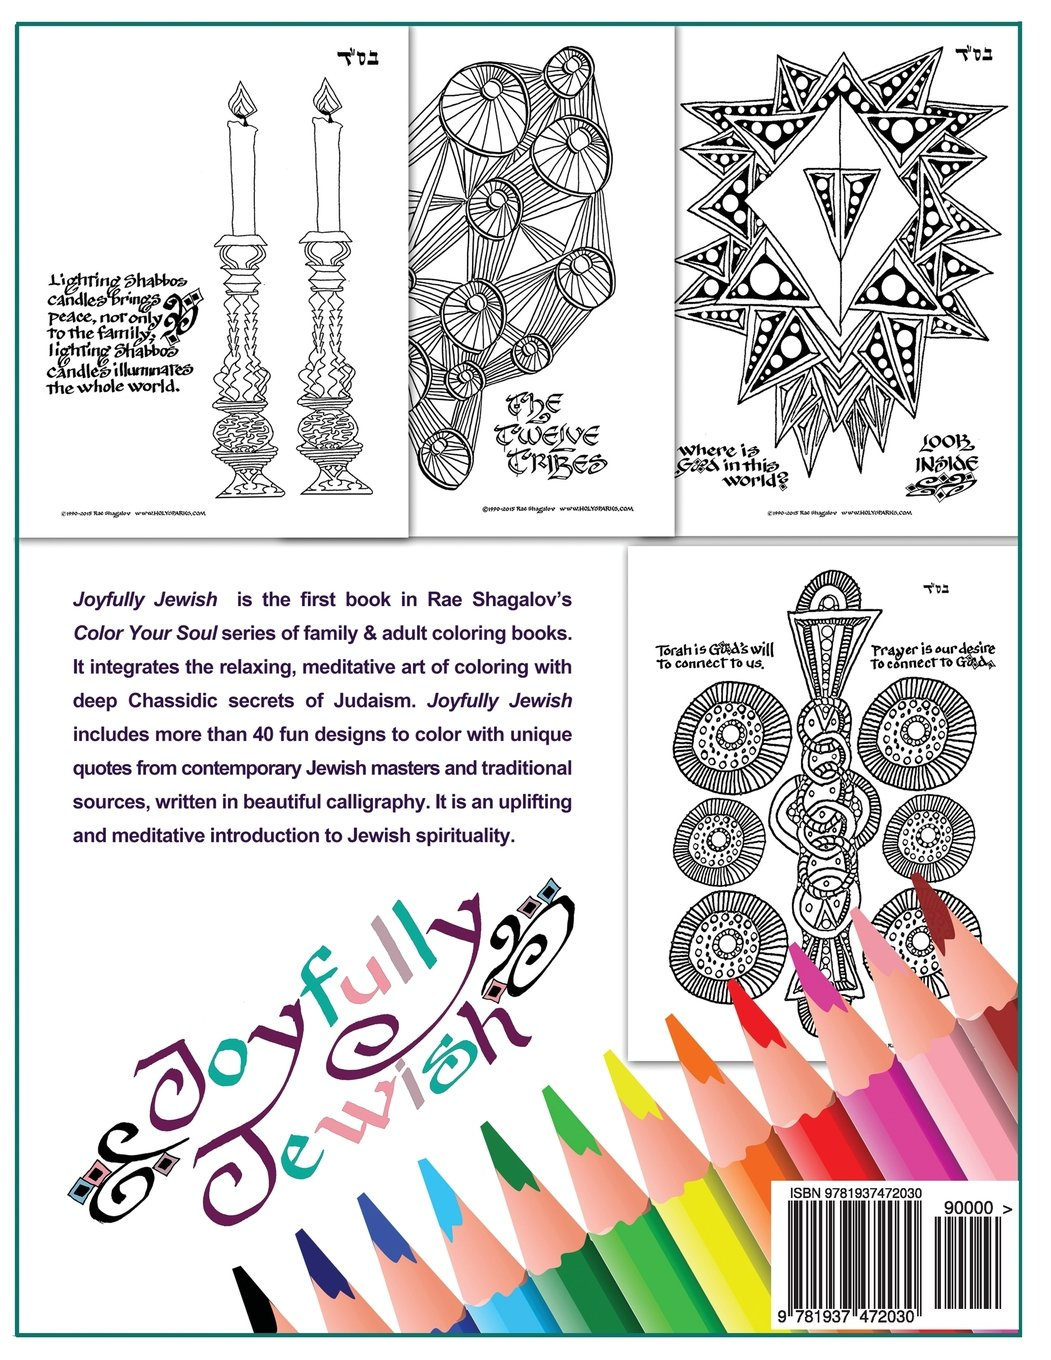 Joyfully Jewish Family And Adult Coloring Book For Relaxation Meditation Color Your Soul Volume 1 Rae Shagalov 9781937472030 Amazon Books